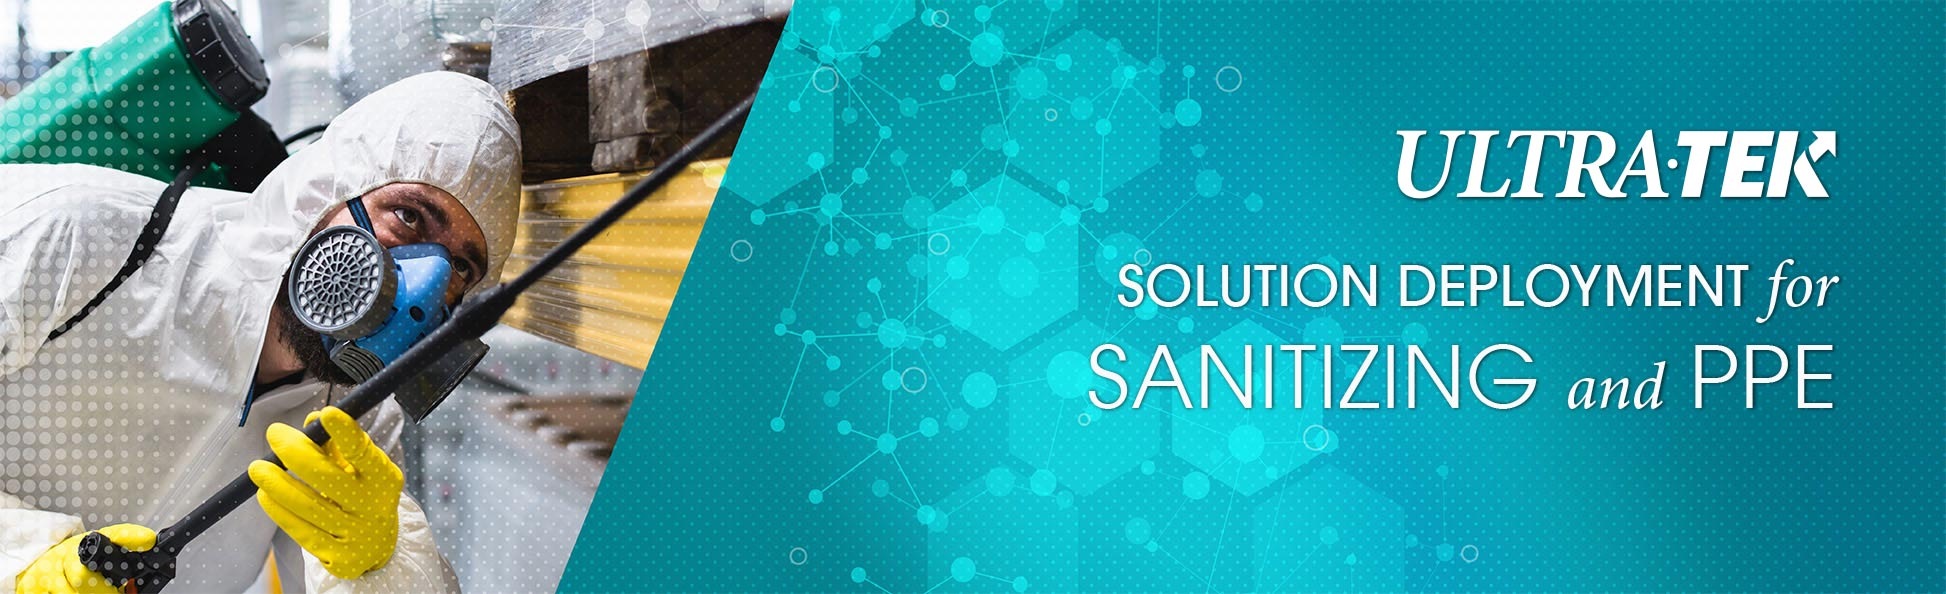 Solution Deployment for Sanitizing & PPE